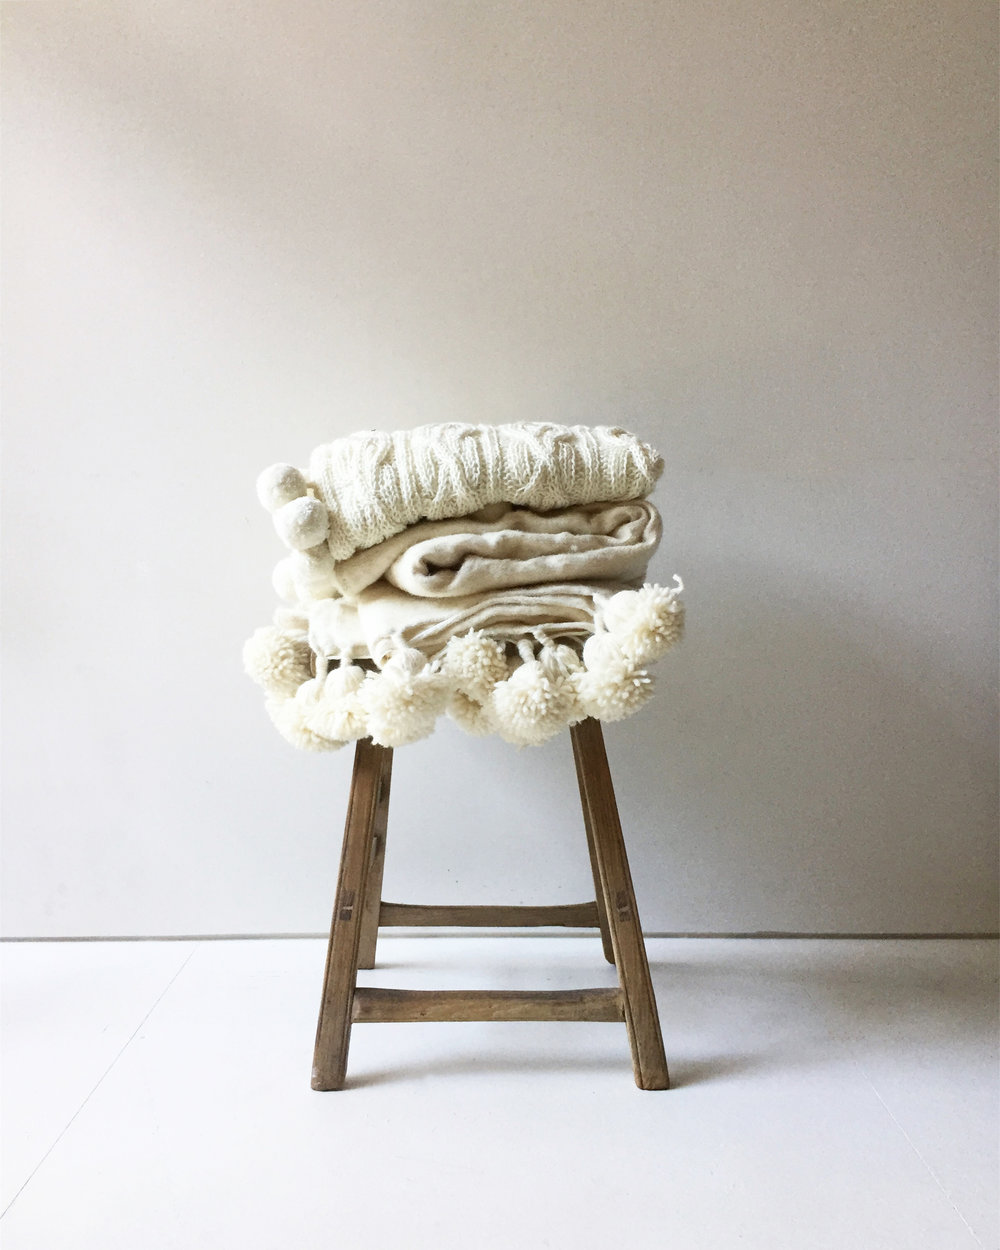 imprint house stool stack.JPG